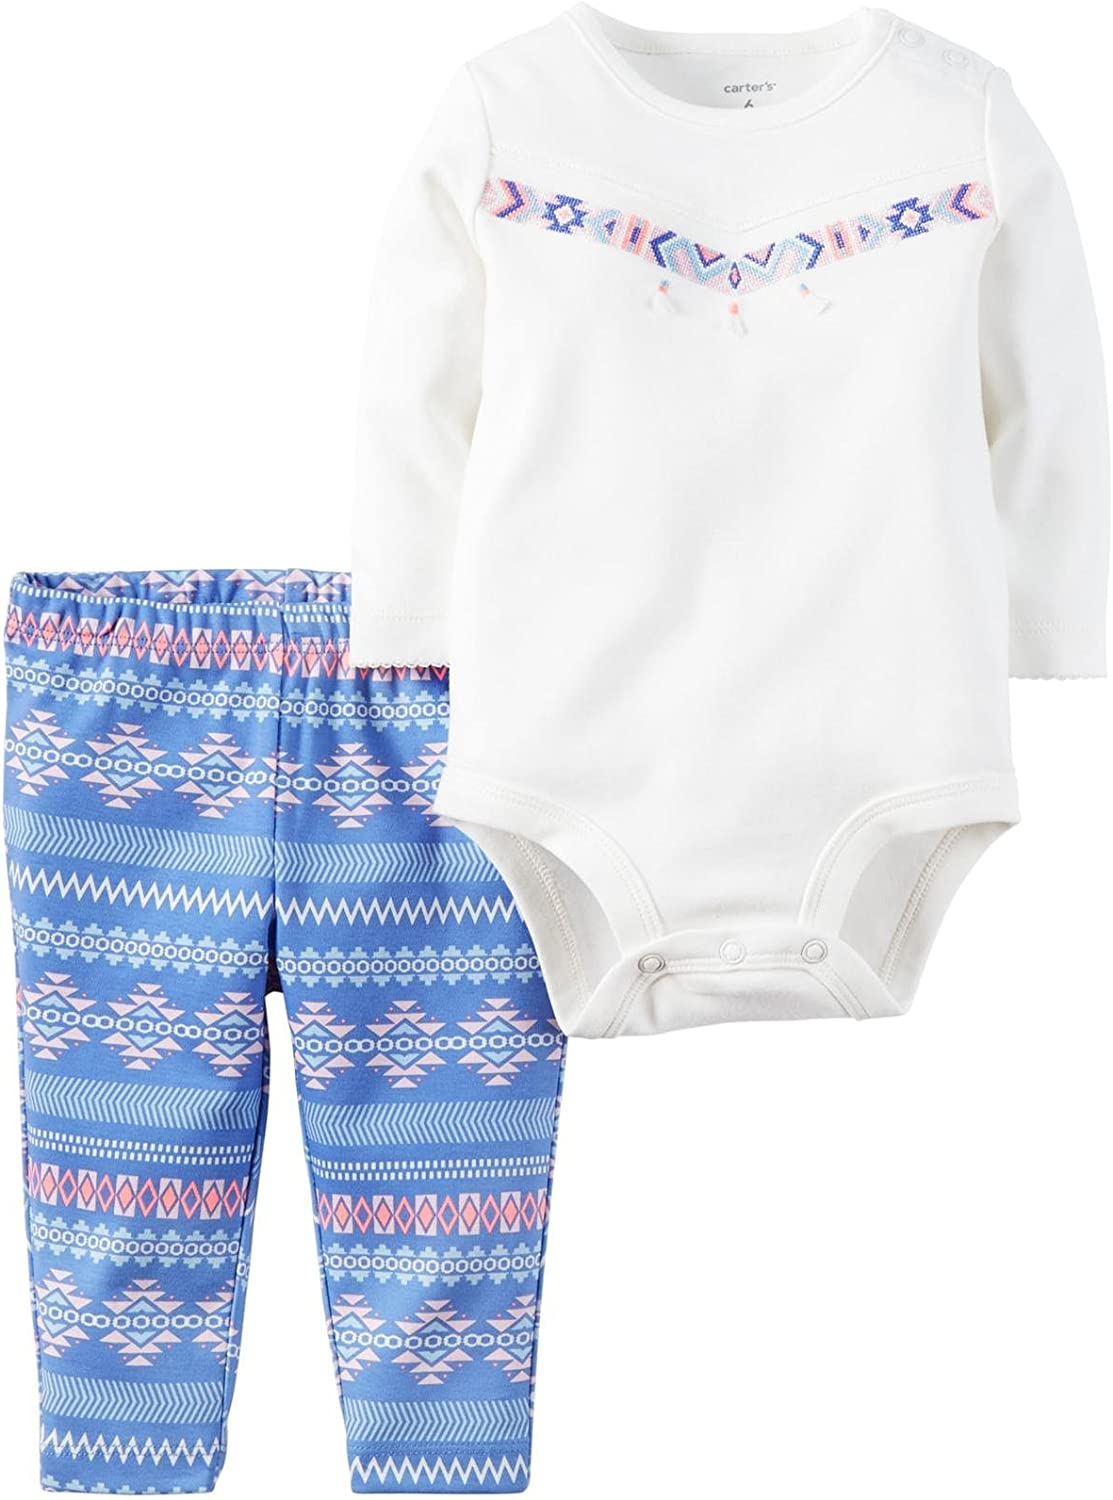 Carter's Outlet sale feature Baby Girls' Bodysuit Sets 121g814 Pant Deluxe